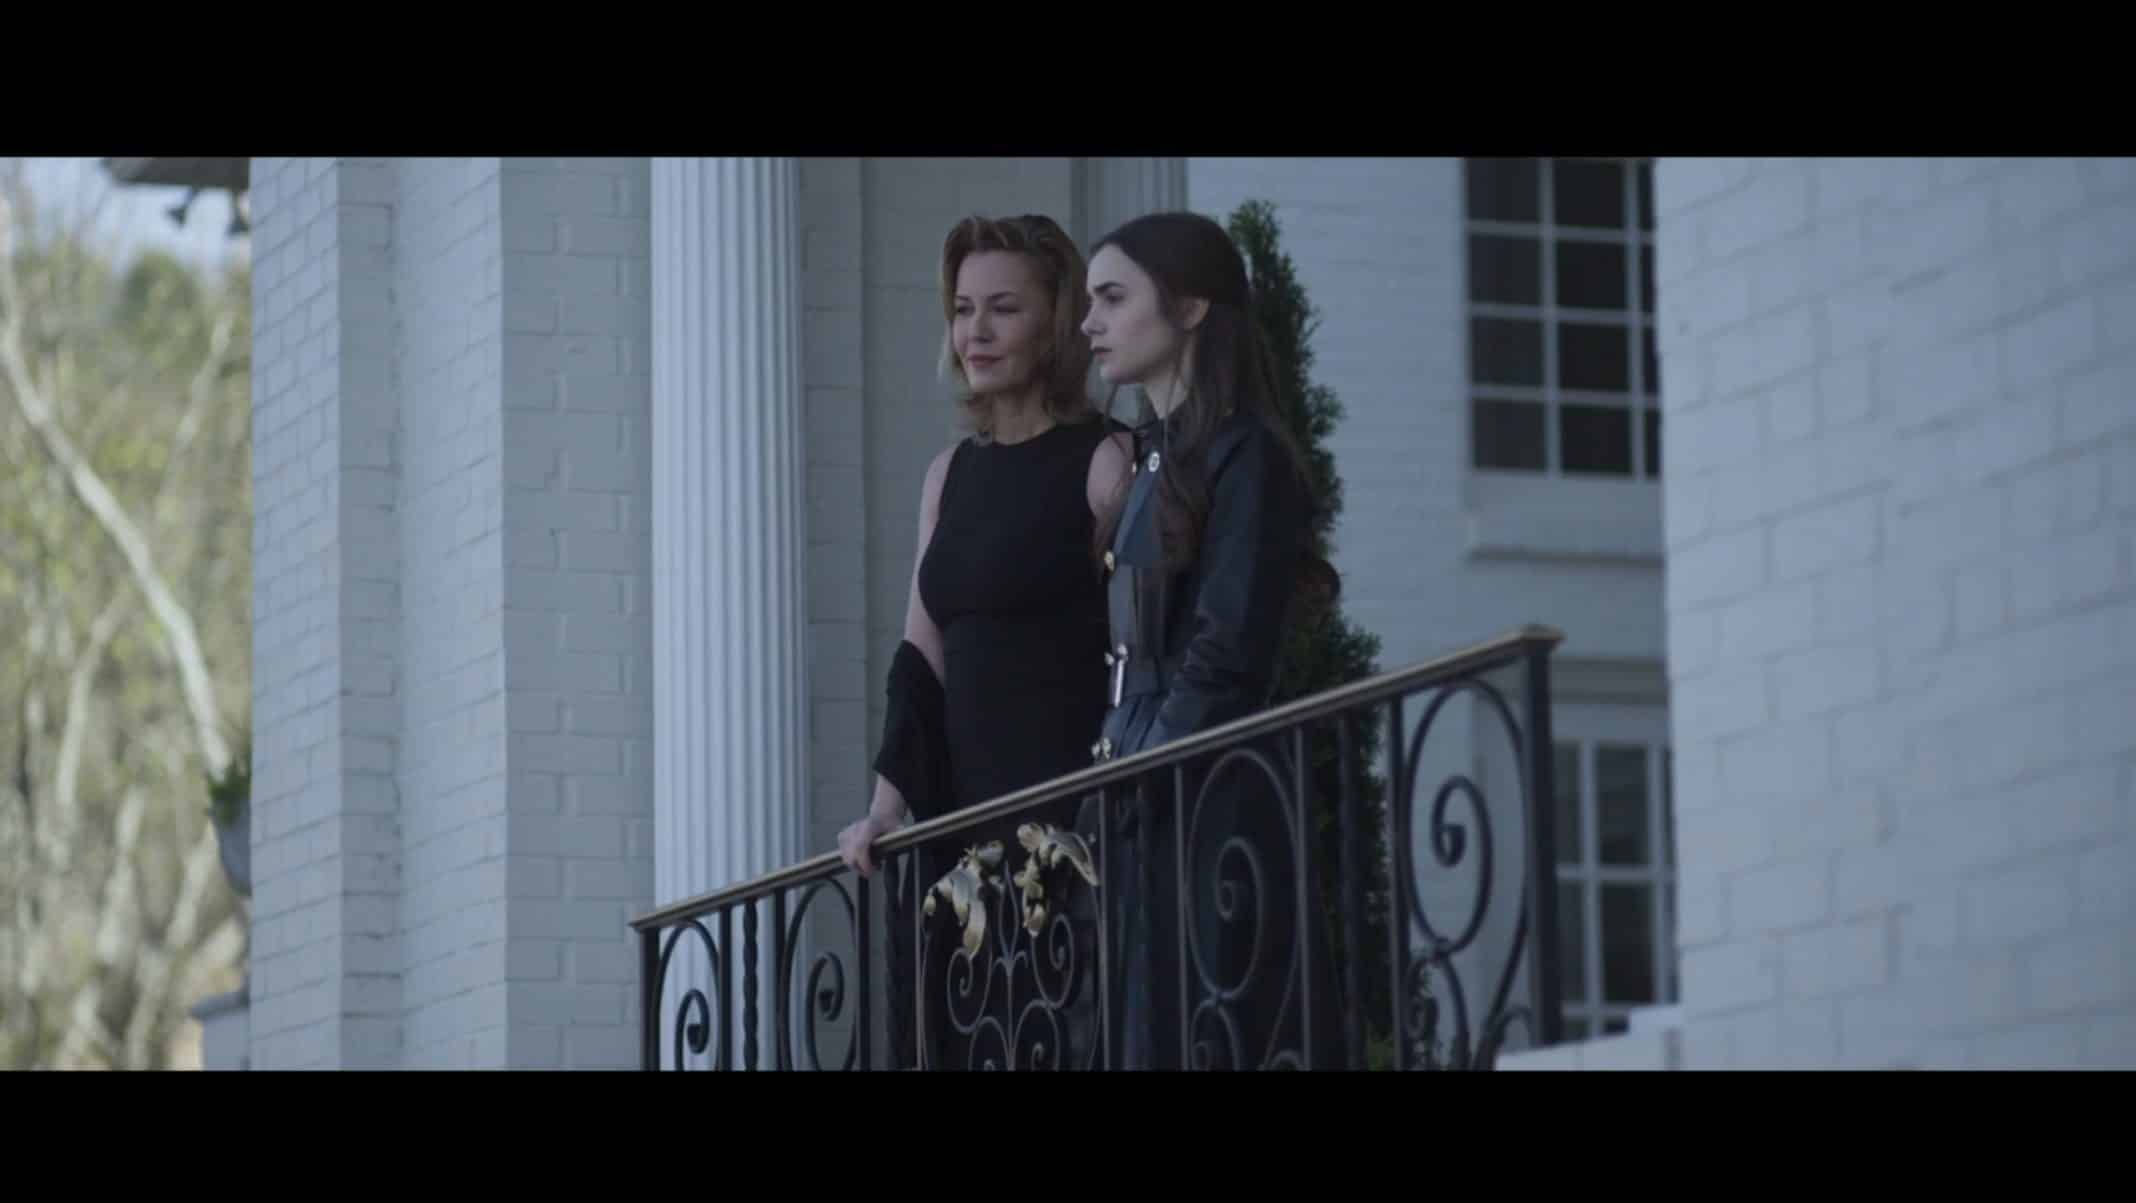 Catherine (Connie Nielsen) and Lauren on the balcony of their summer home.